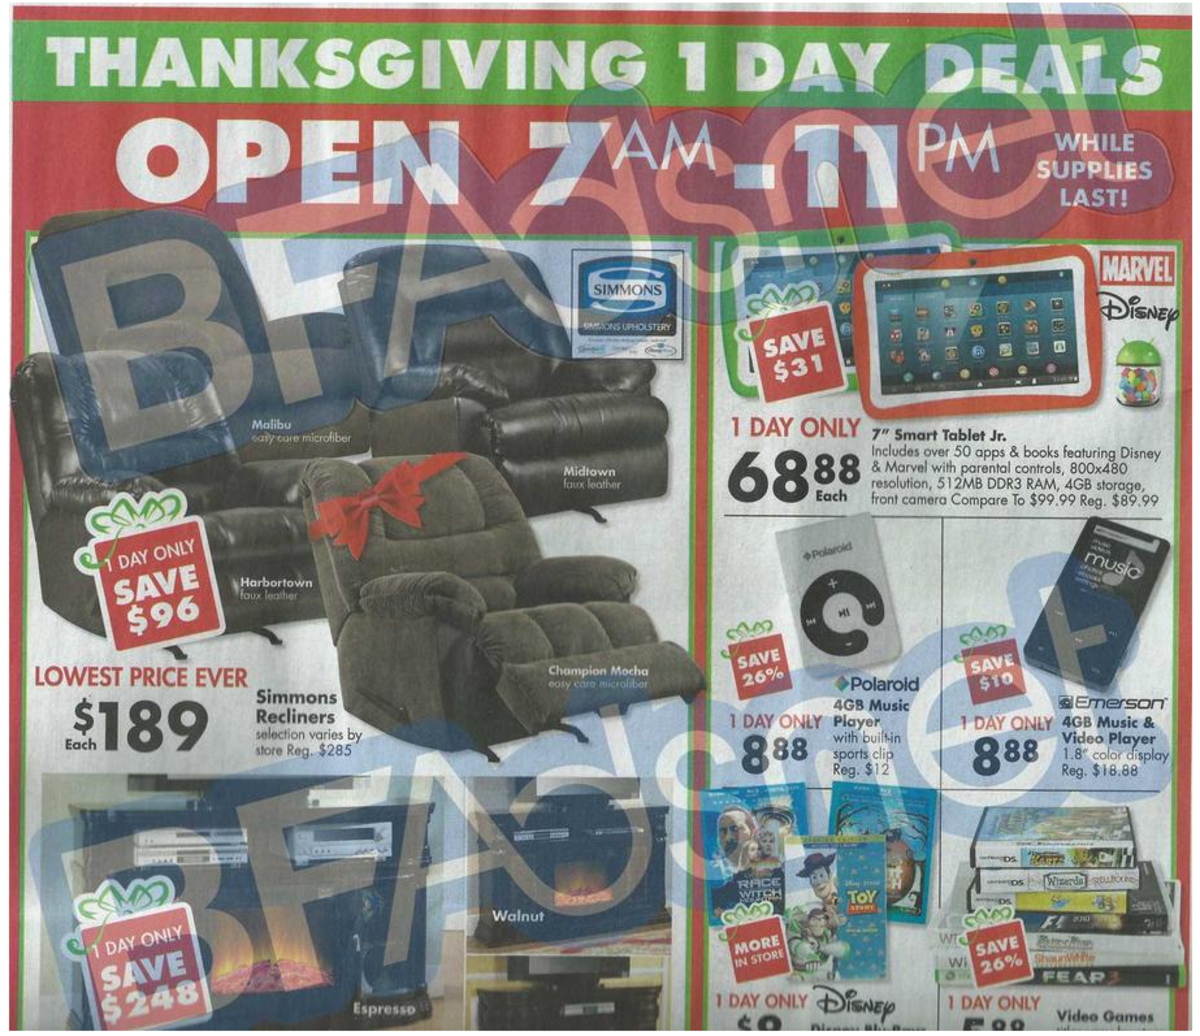 Big Lots Black Friday Ad 2013 Black friday ads, Black